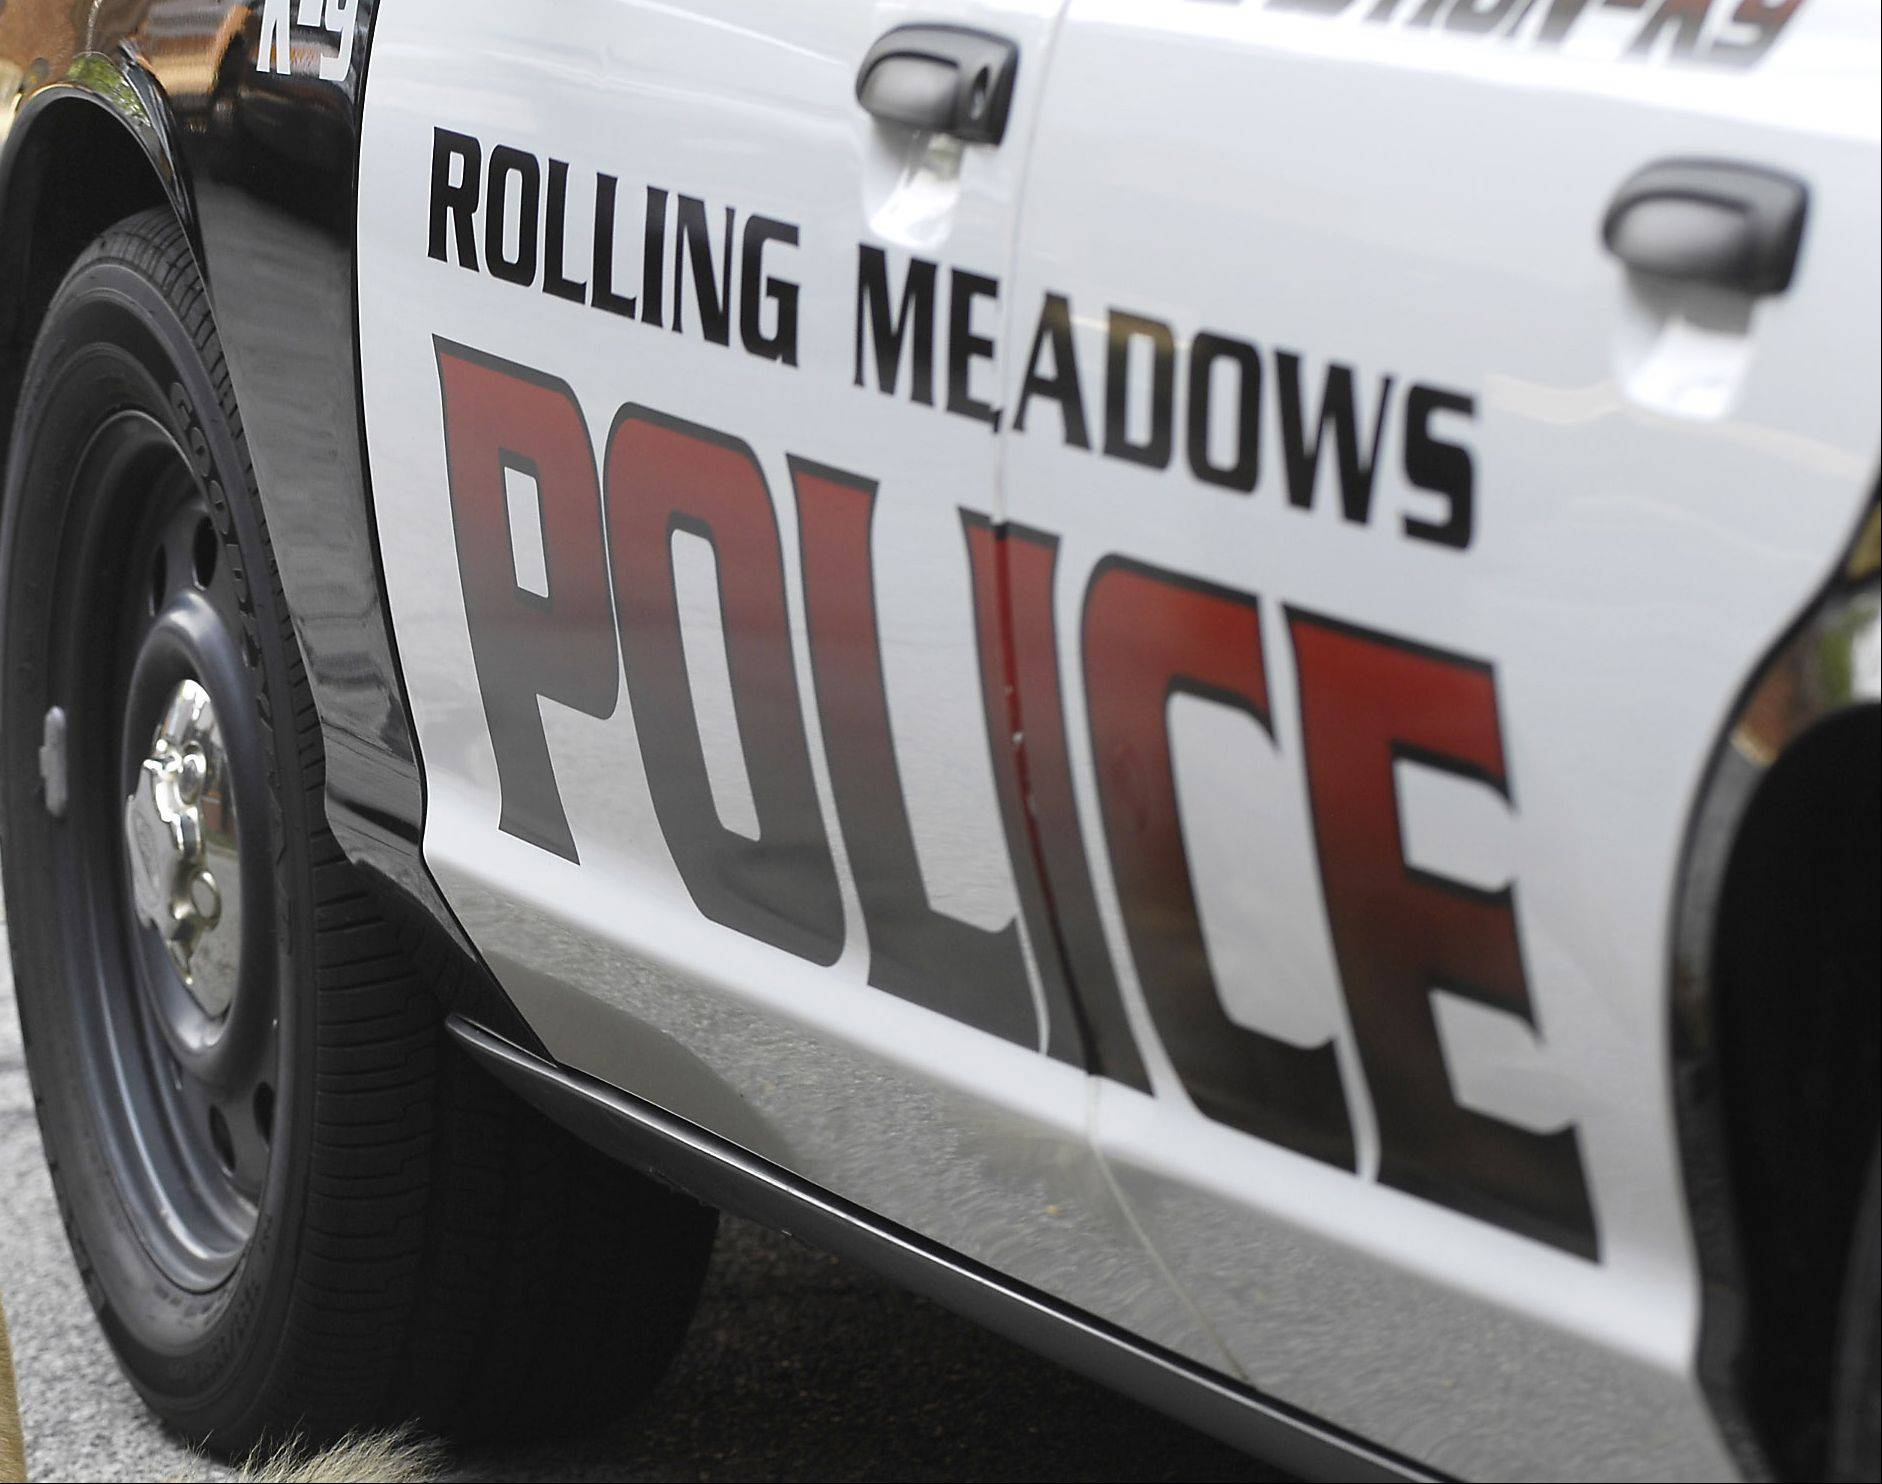 DAILY HERALD FILE PHOTO The Rolling Meadows Police Department could add part-time officers to its corps in an effort to relieve full-time officers of administrative tasks and get them back on the streets.